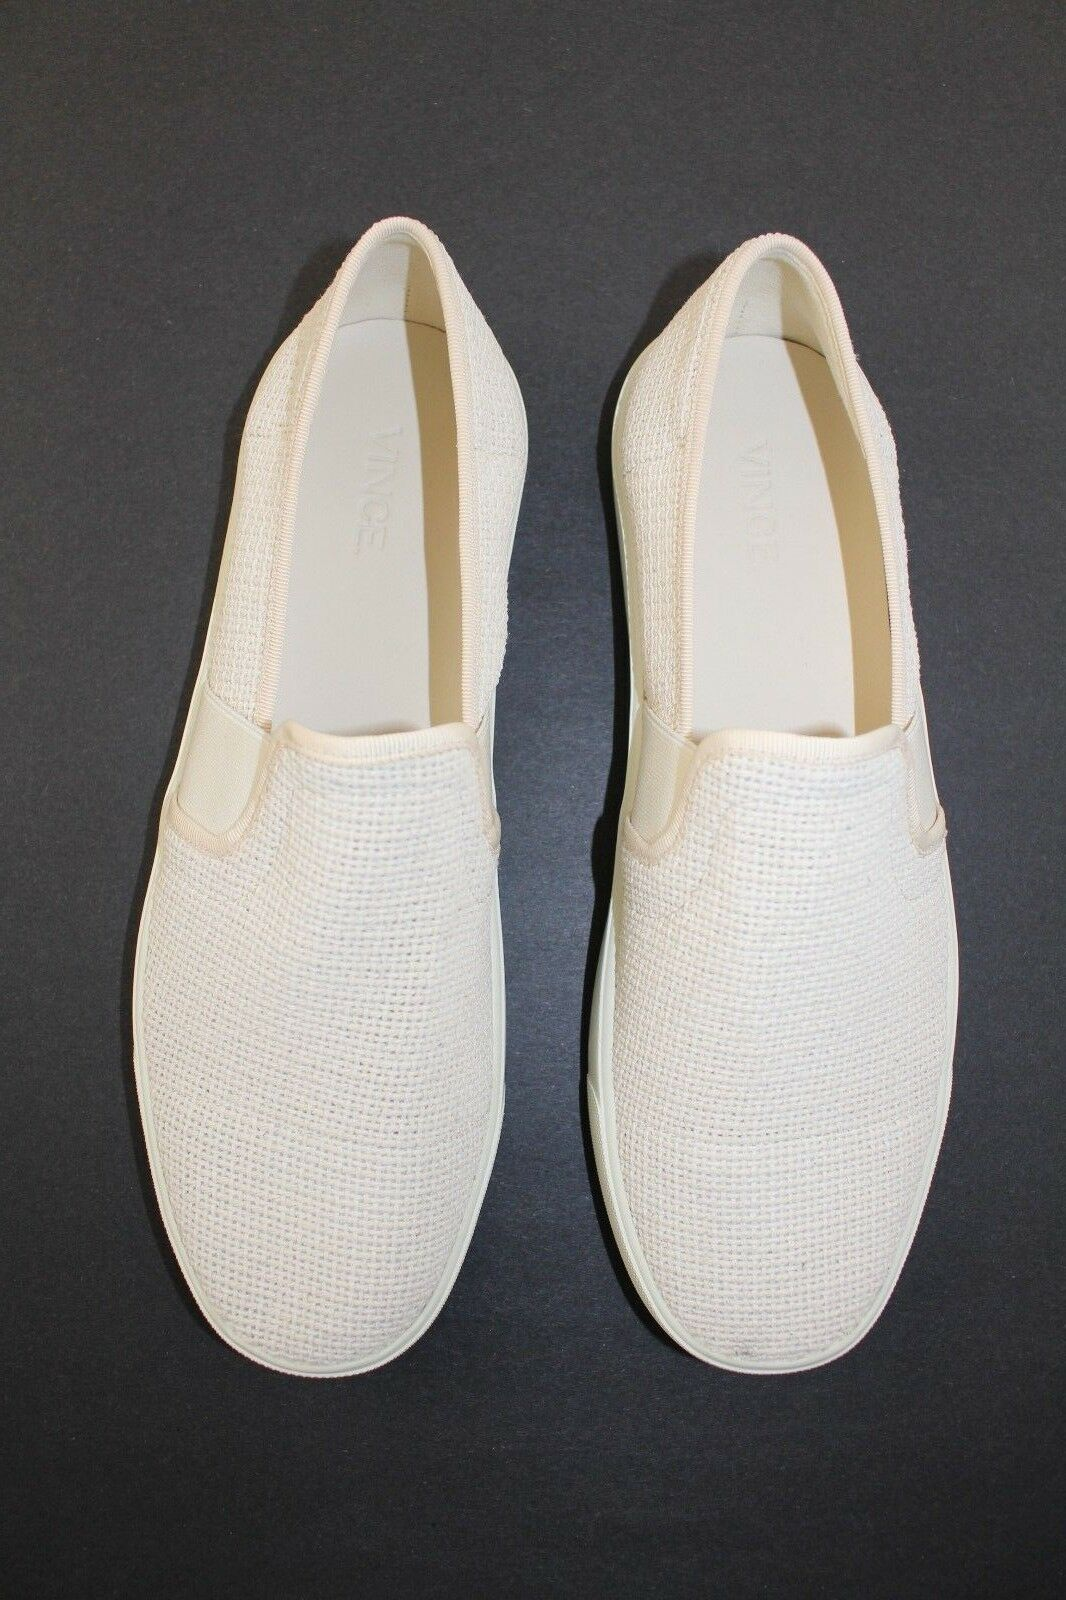 Vince Blair Slip On Sneakers sz US 9.5   EU 39.5 in cream